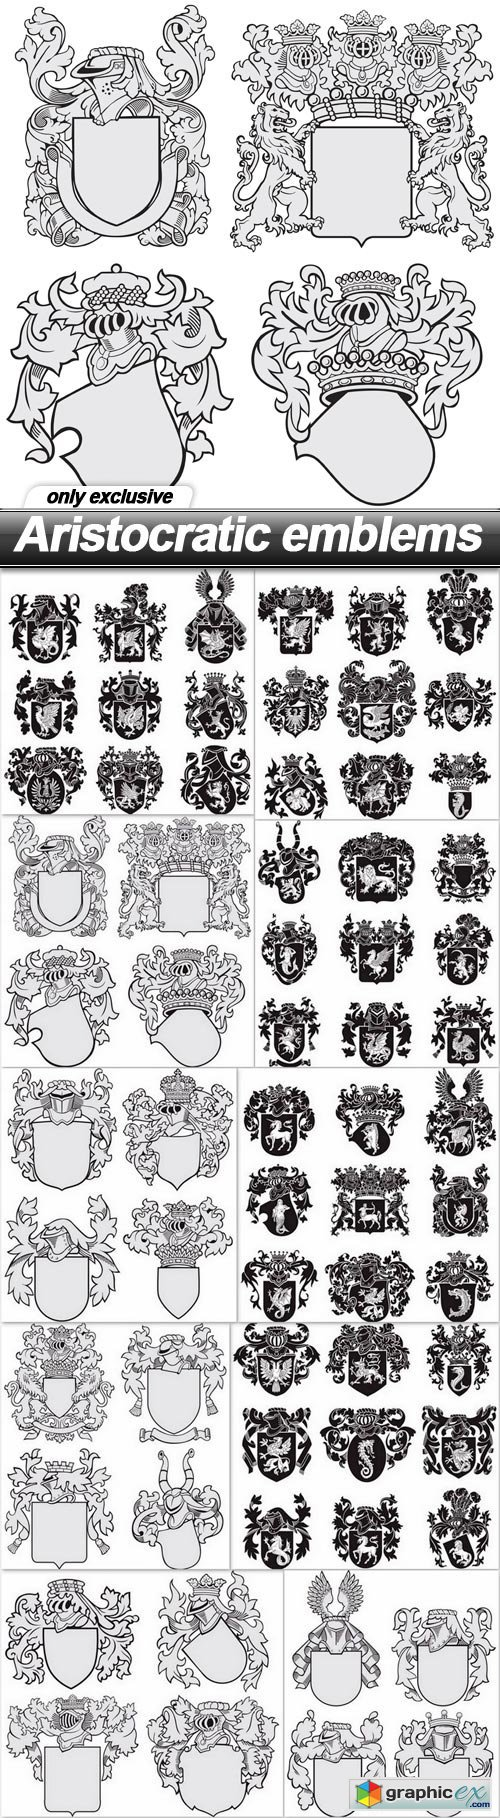 Aristocratic emblems - 10 EPS